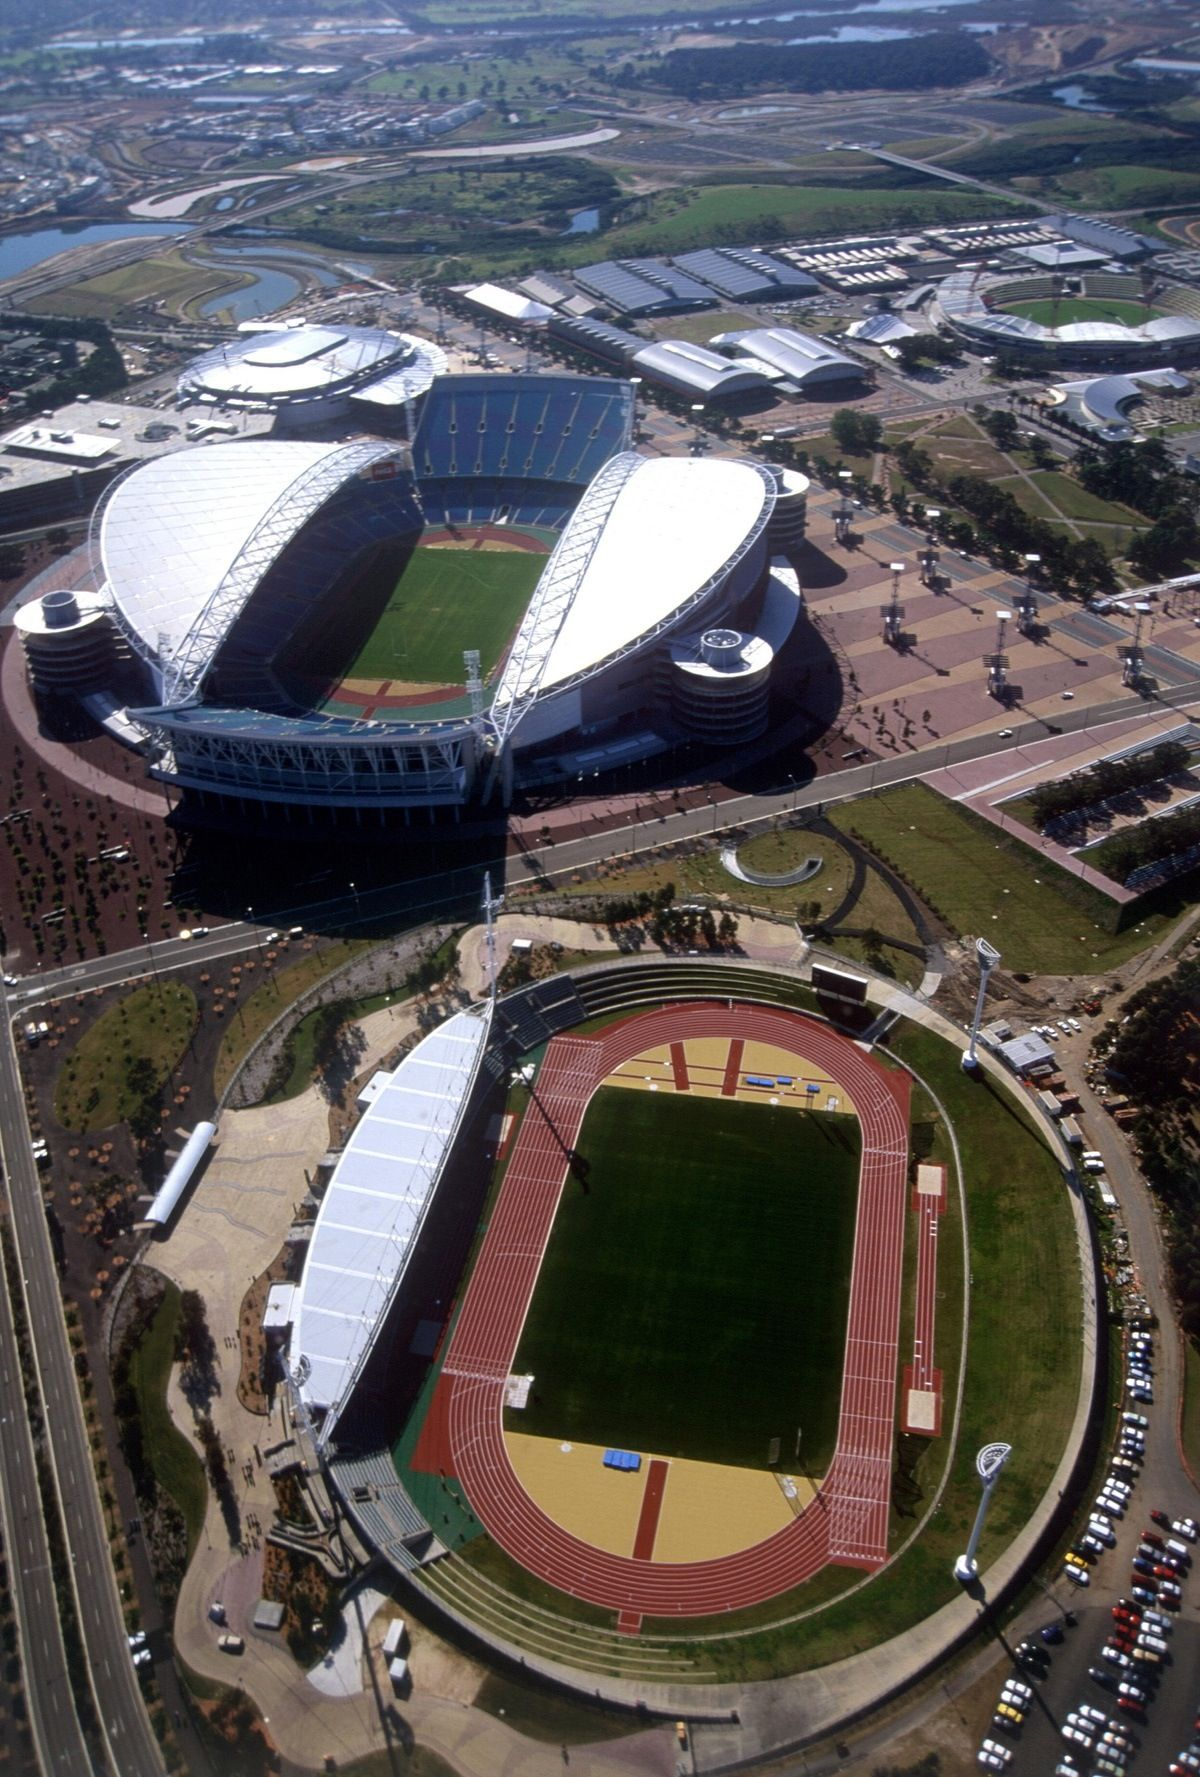 Sydney Olympic Park At Homebush NSW